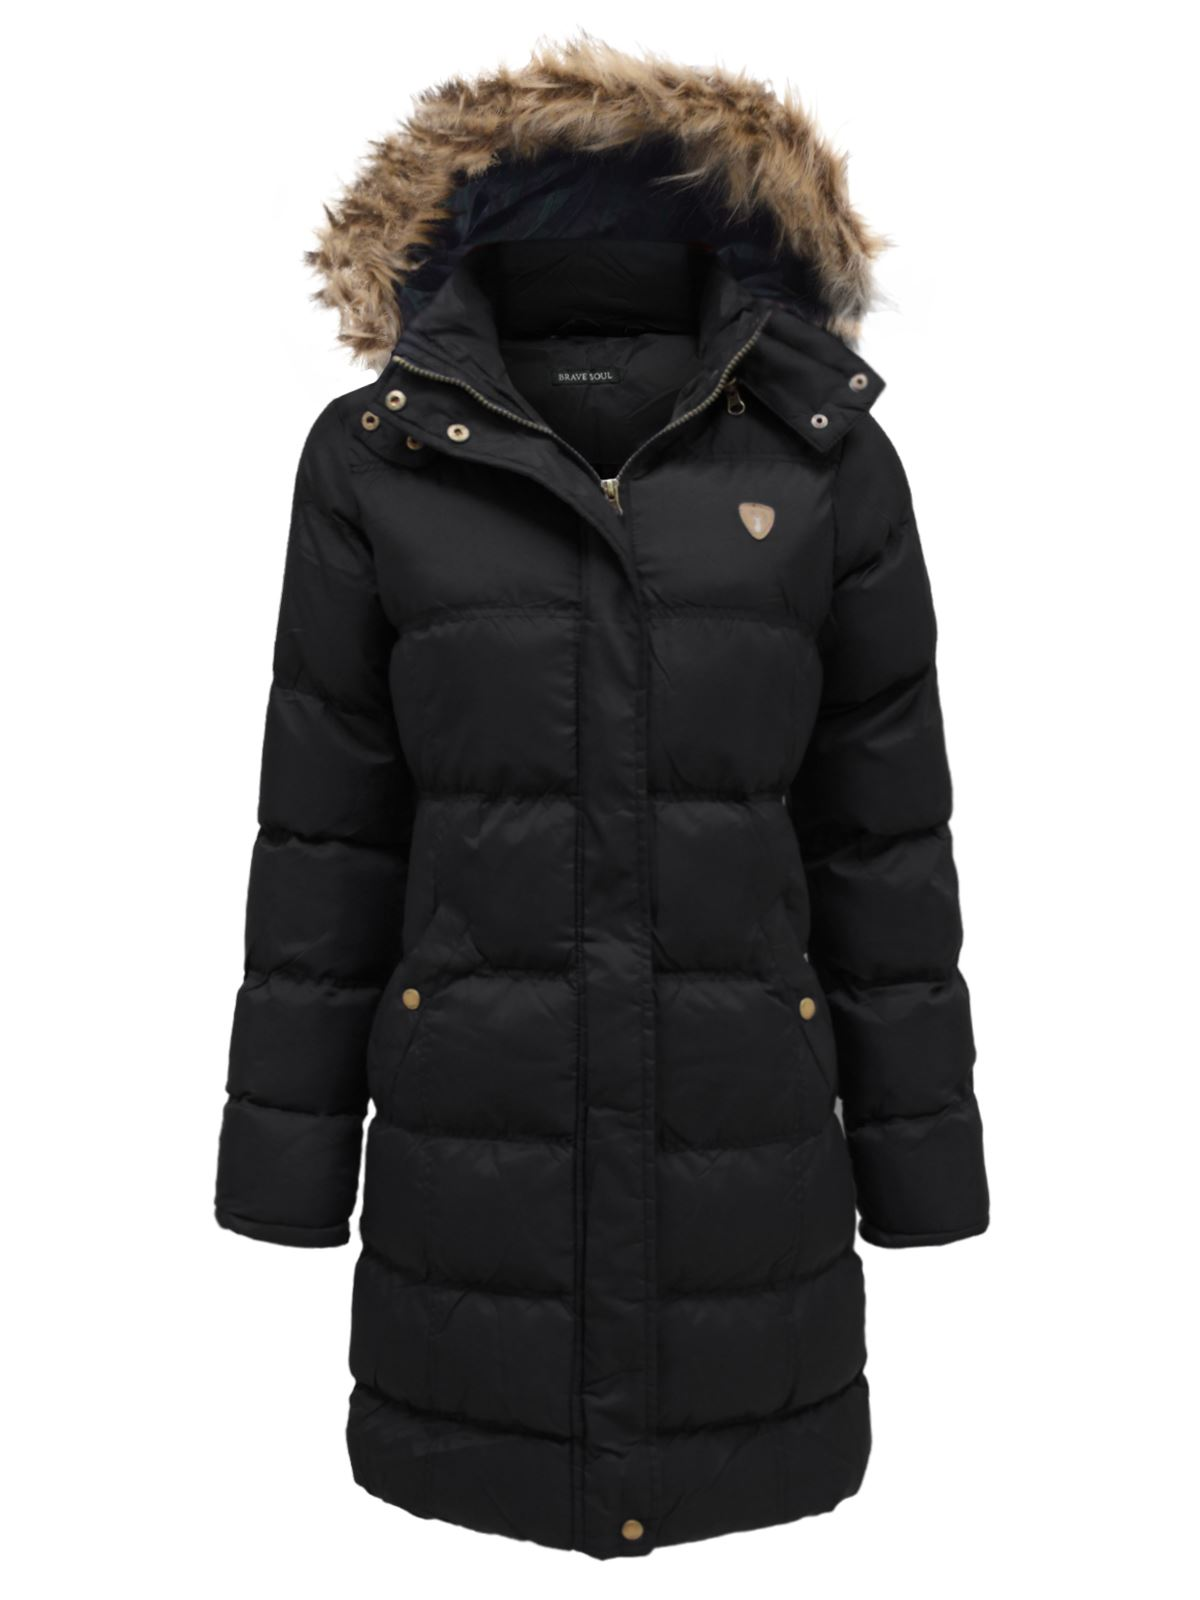 Womens long puffer coat with hood